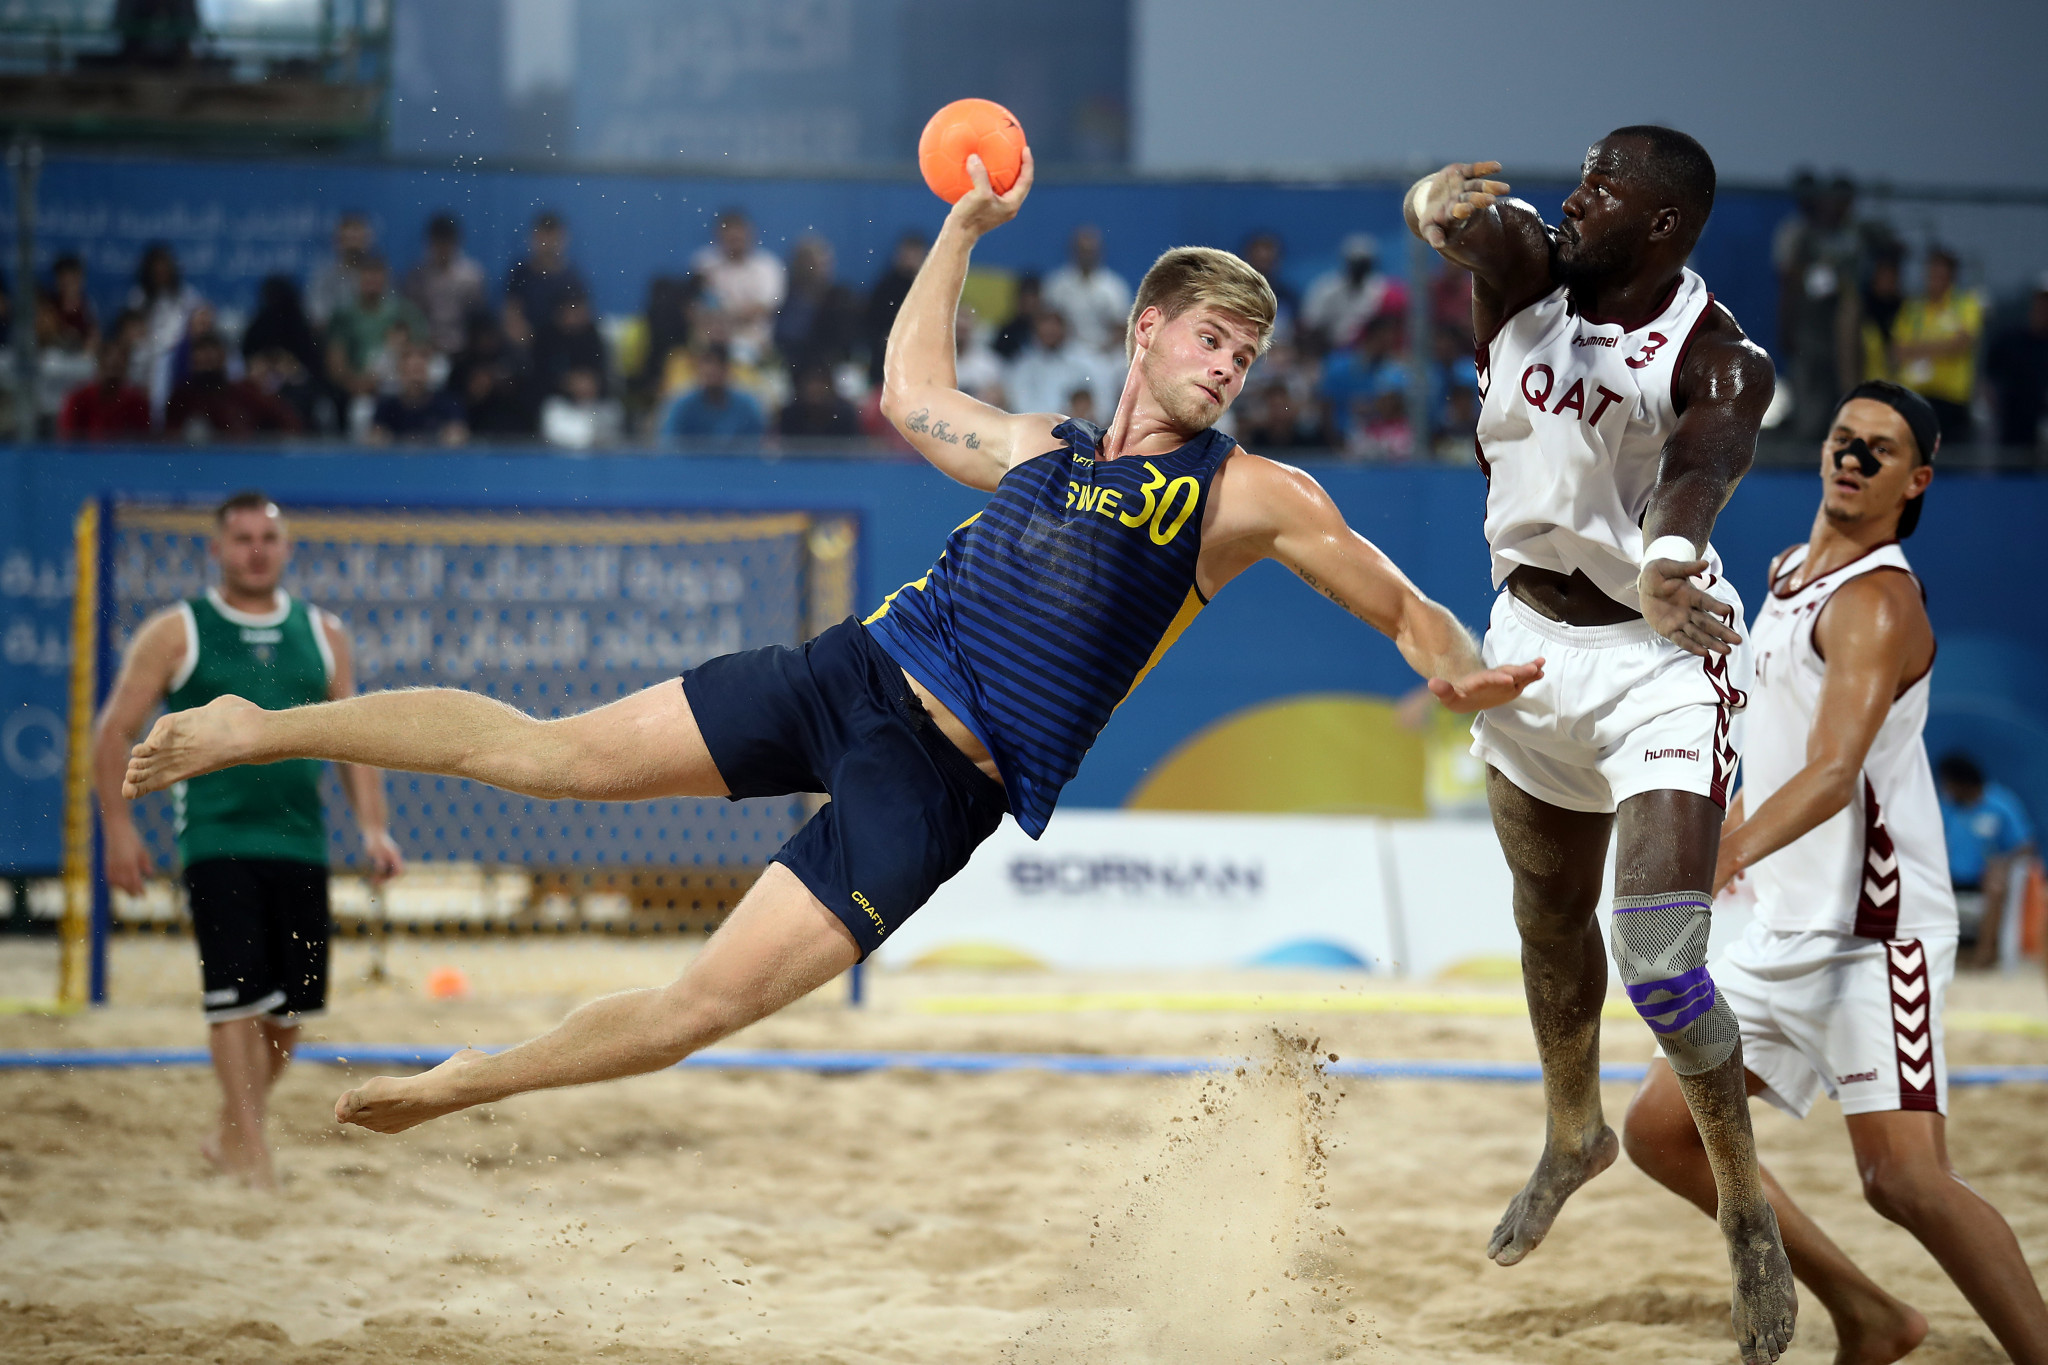 IHF submit proposal for inclusion of beach handball at Paris 2024